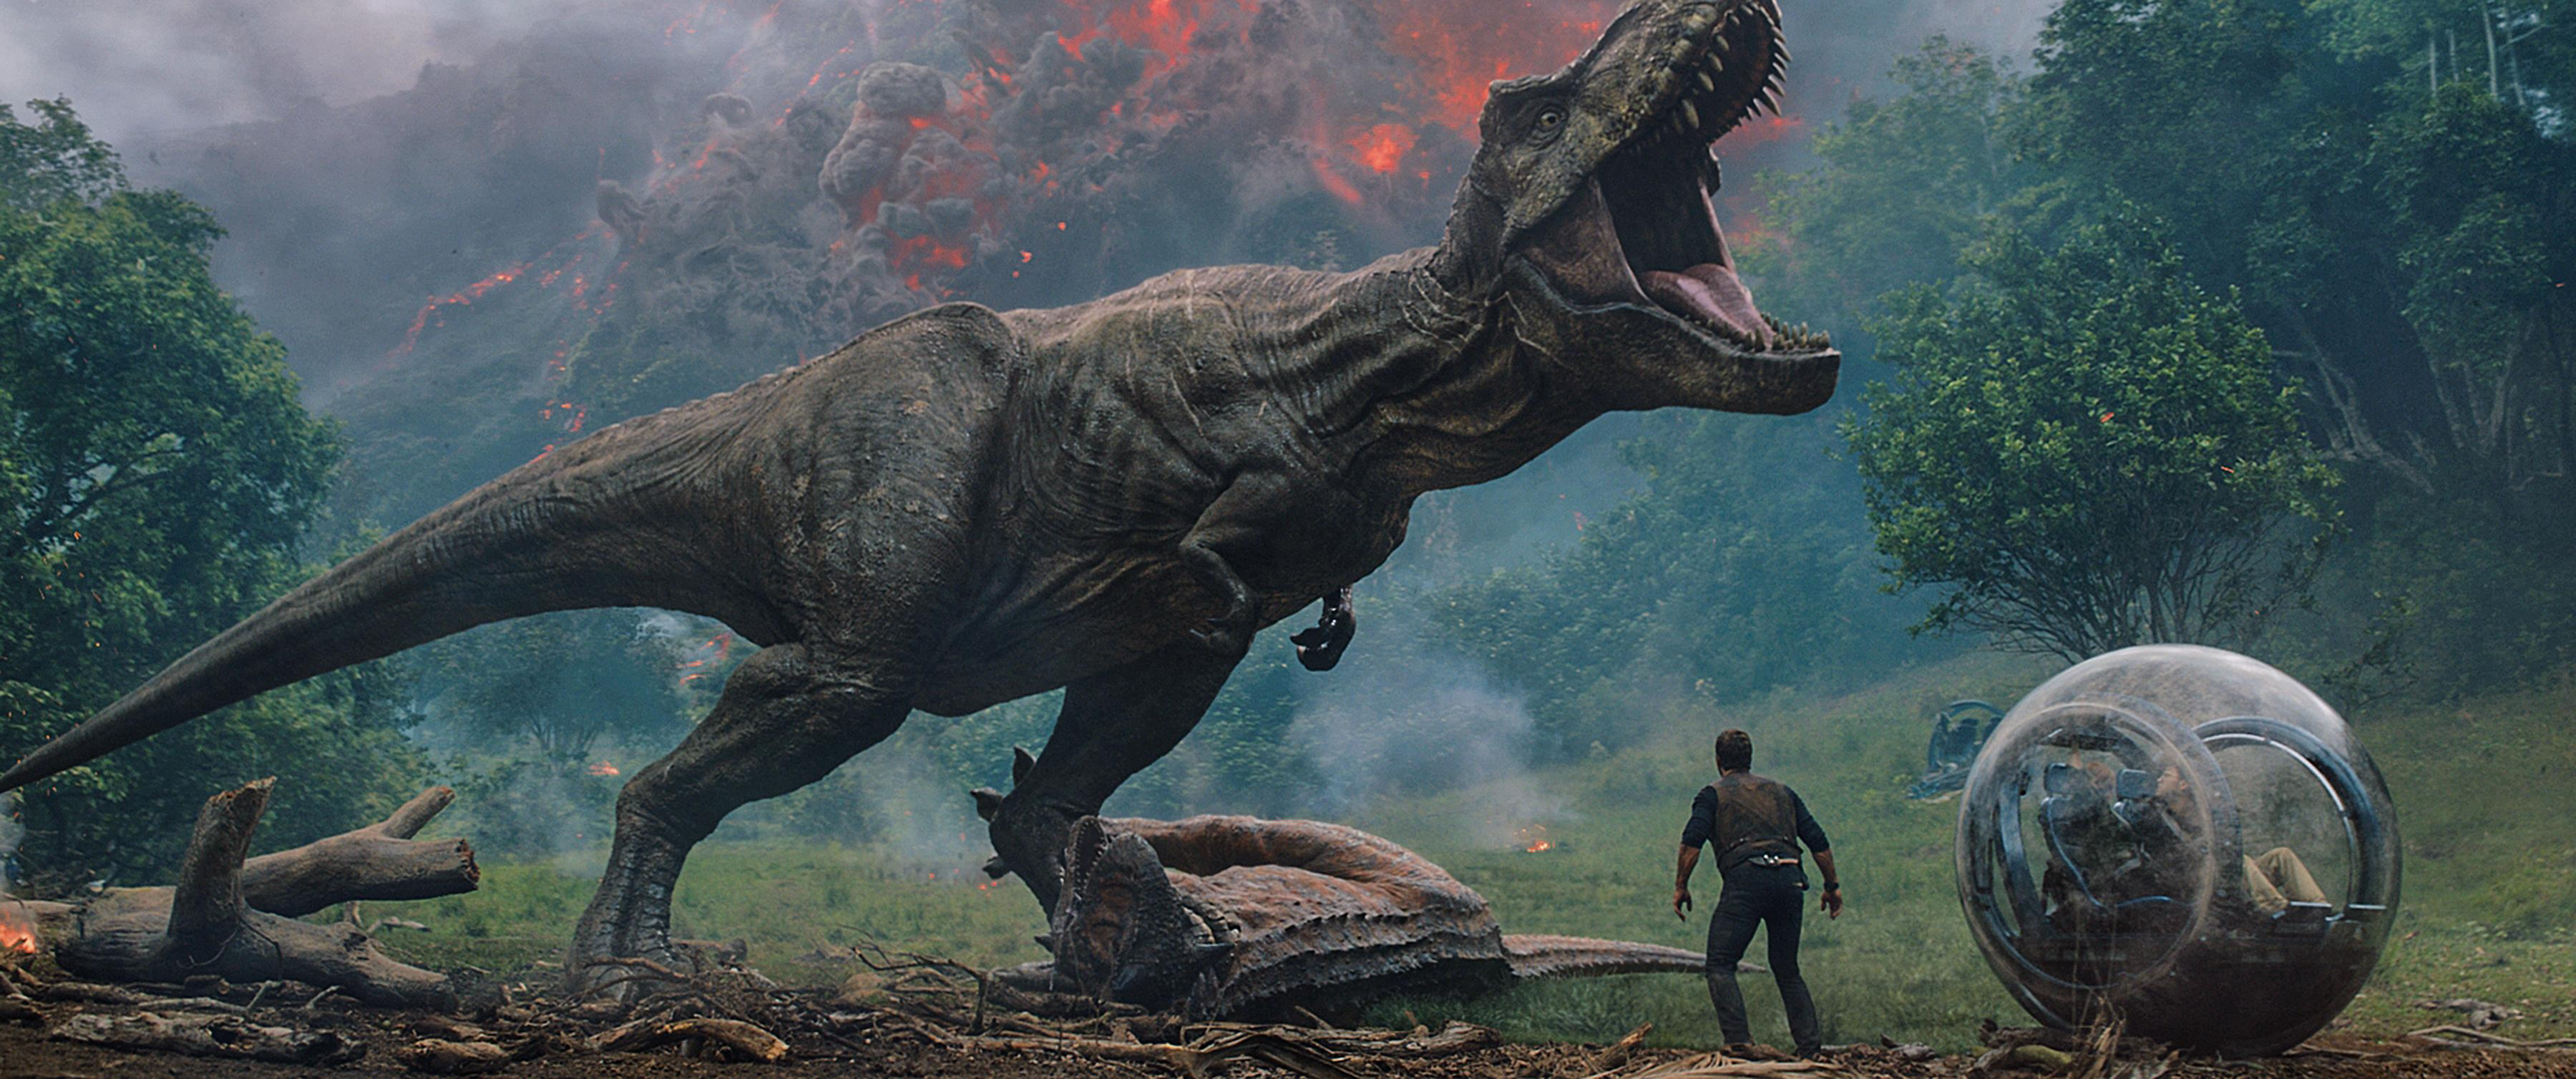 Jurassic World: Fallen Kingdom\u0027 save dinos